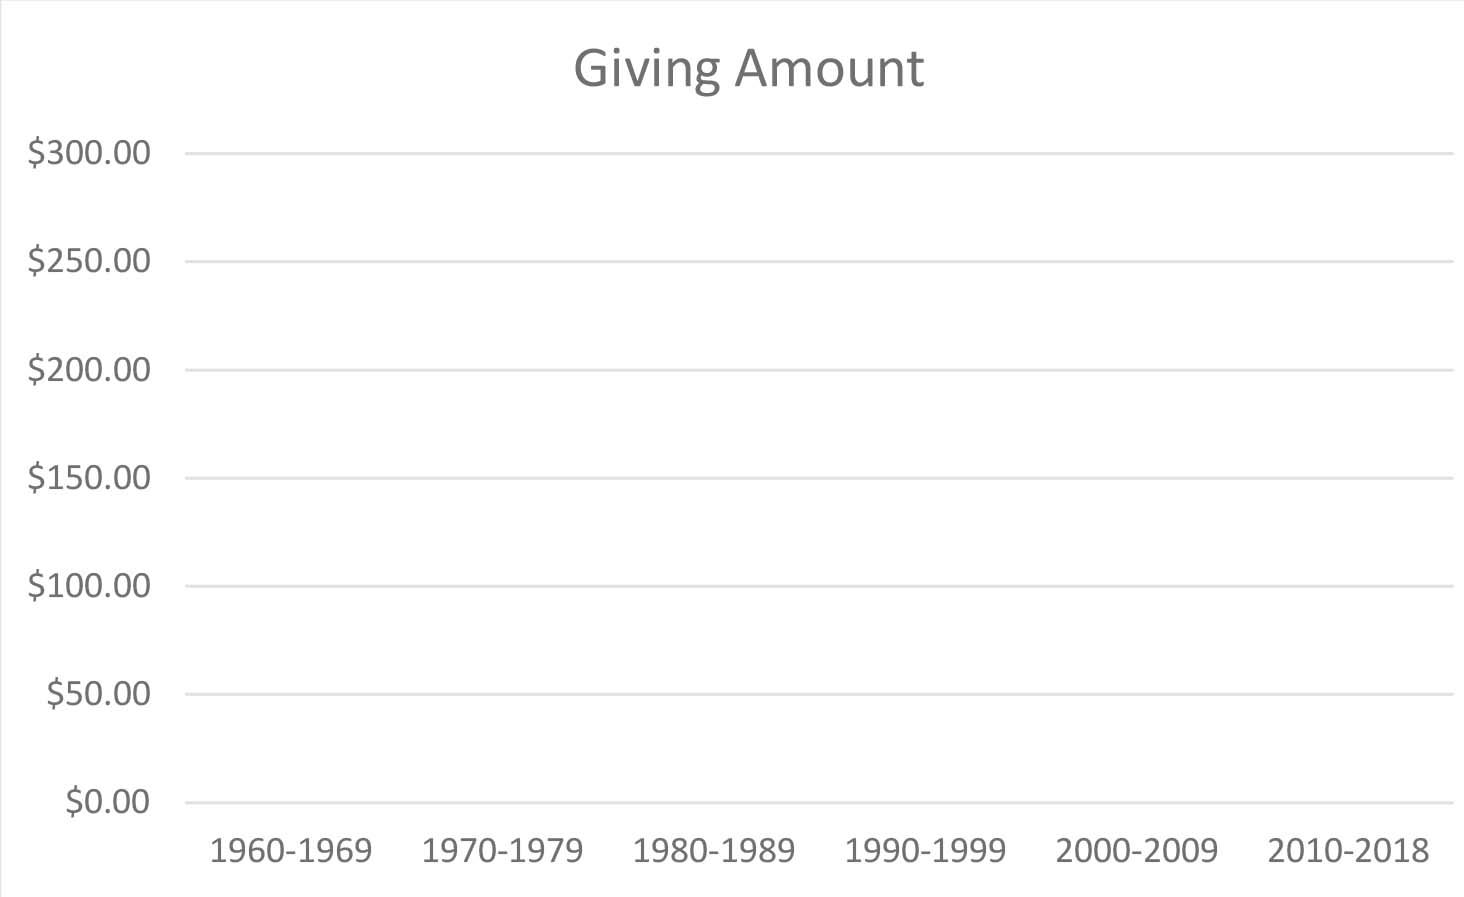 Giving Chart by decade